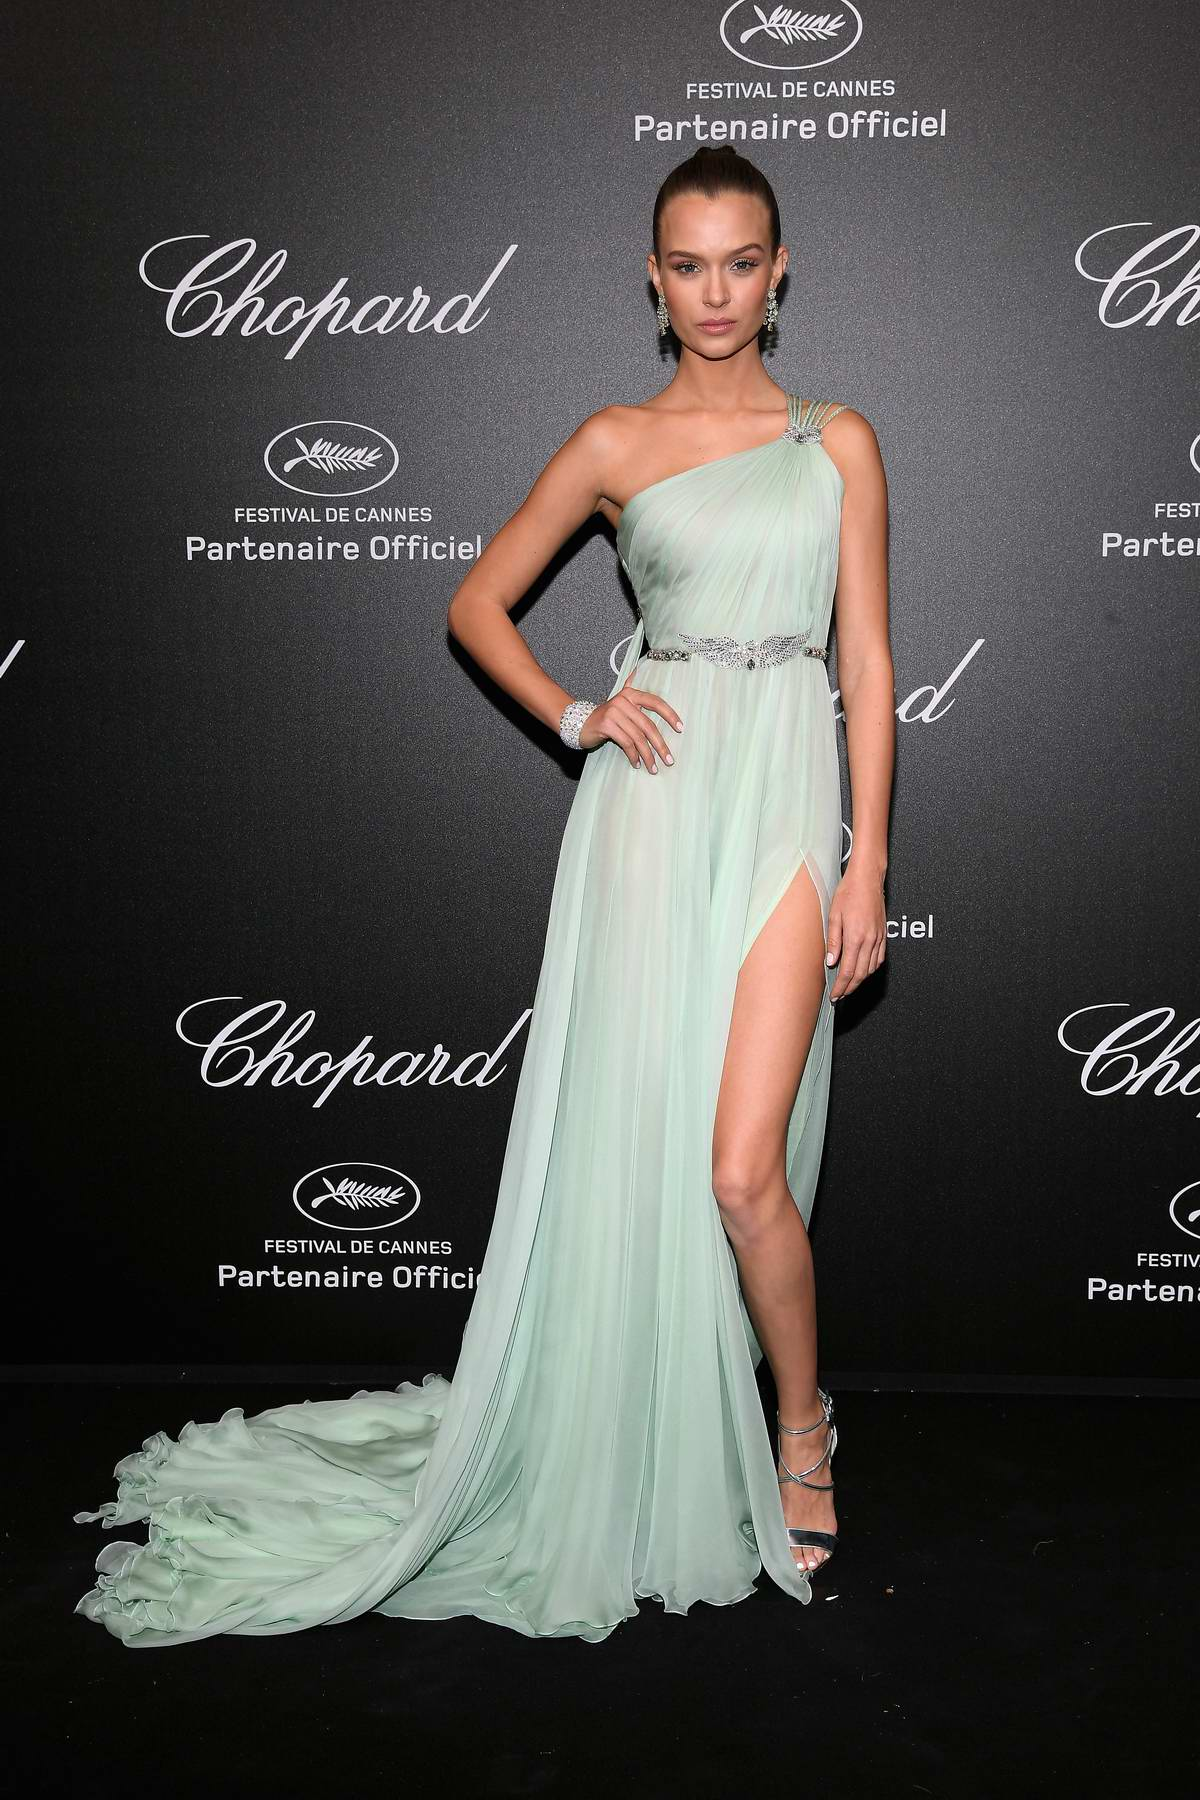 Josephine Skriver attends Secret Chopard party during the 71st Cannes Film Festival in Cannes, France